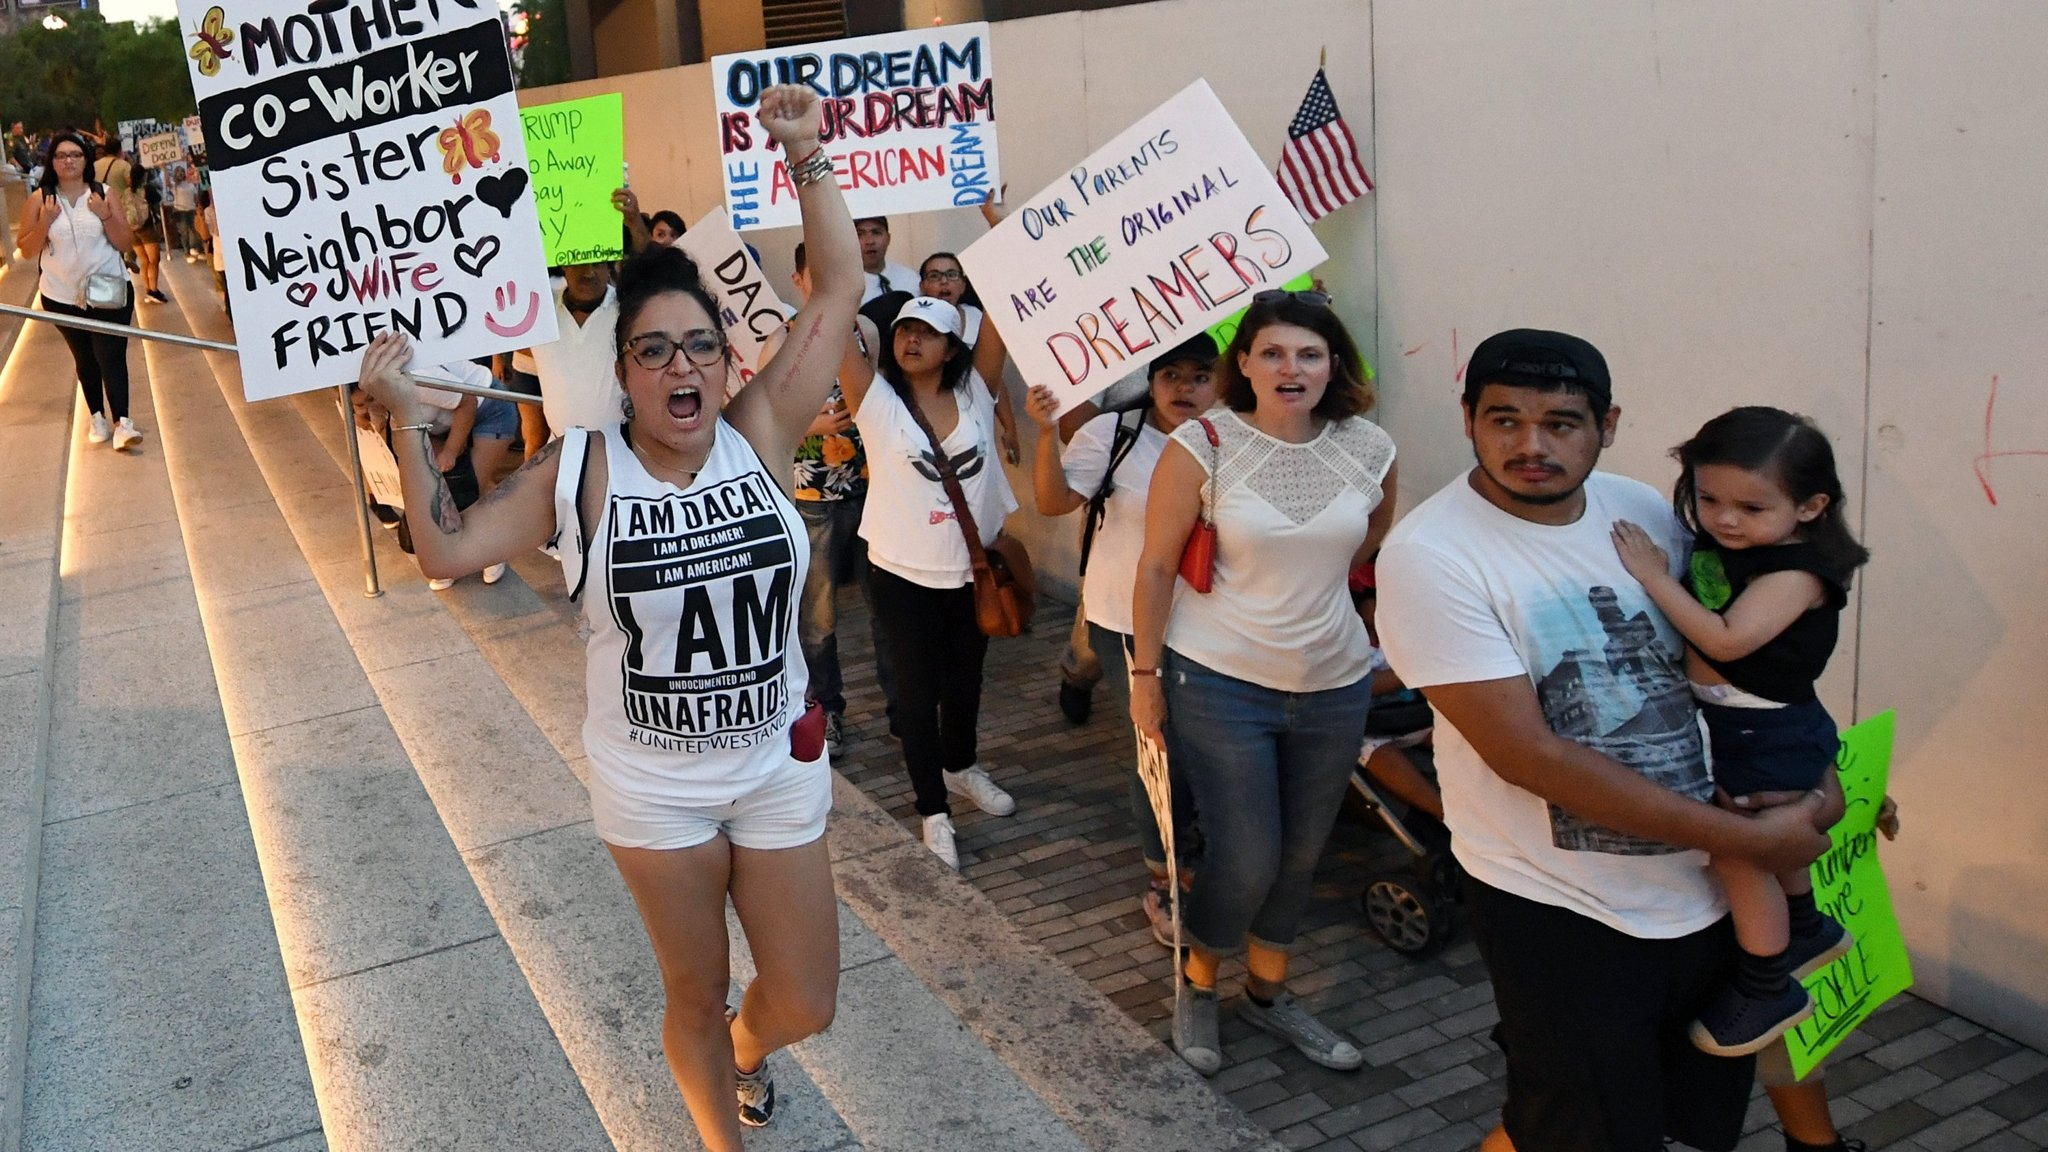 US migrant 'Dreamers' wait anxiously to learn fate